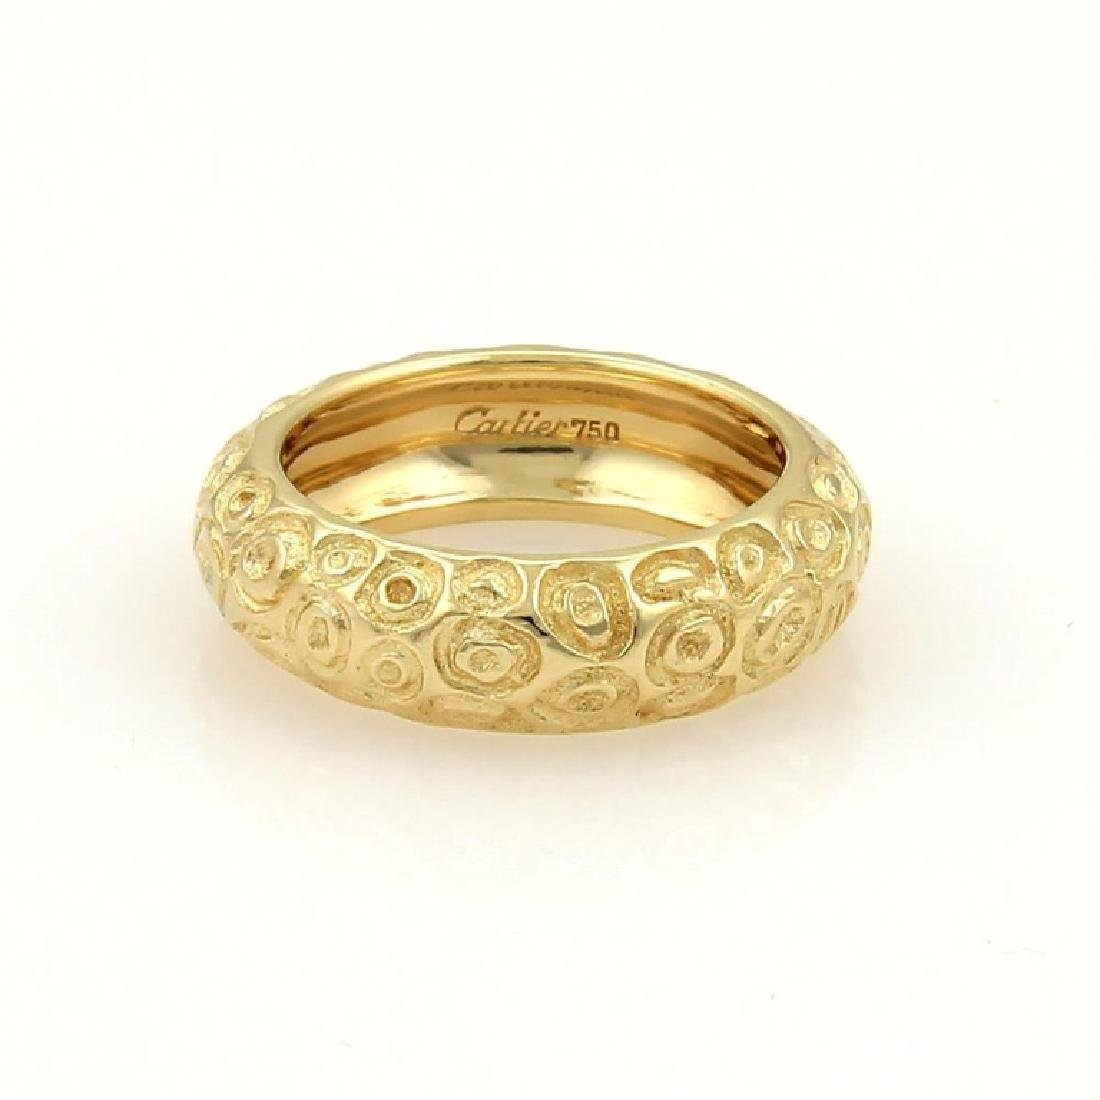 Vintage Cartier 18k Gold Textured Dome Band Ring